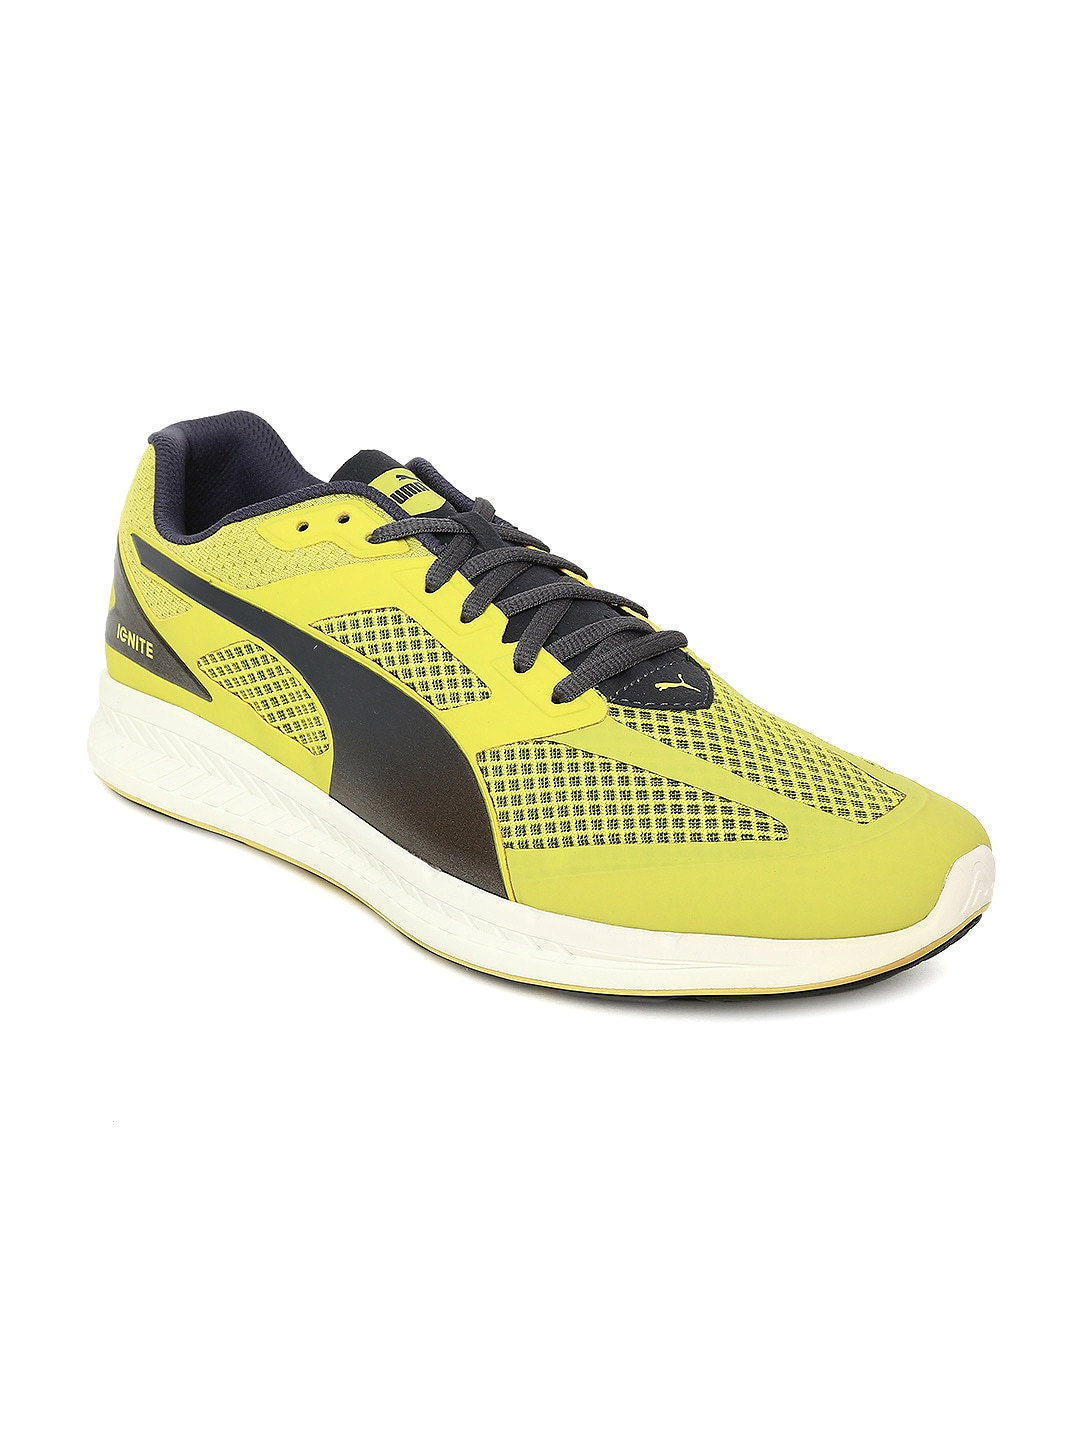 Puma Yellow Ferrari Shoes For Men - Buy Puma Yellow Ferrari Shoes For Men  online in India 55ffa572d